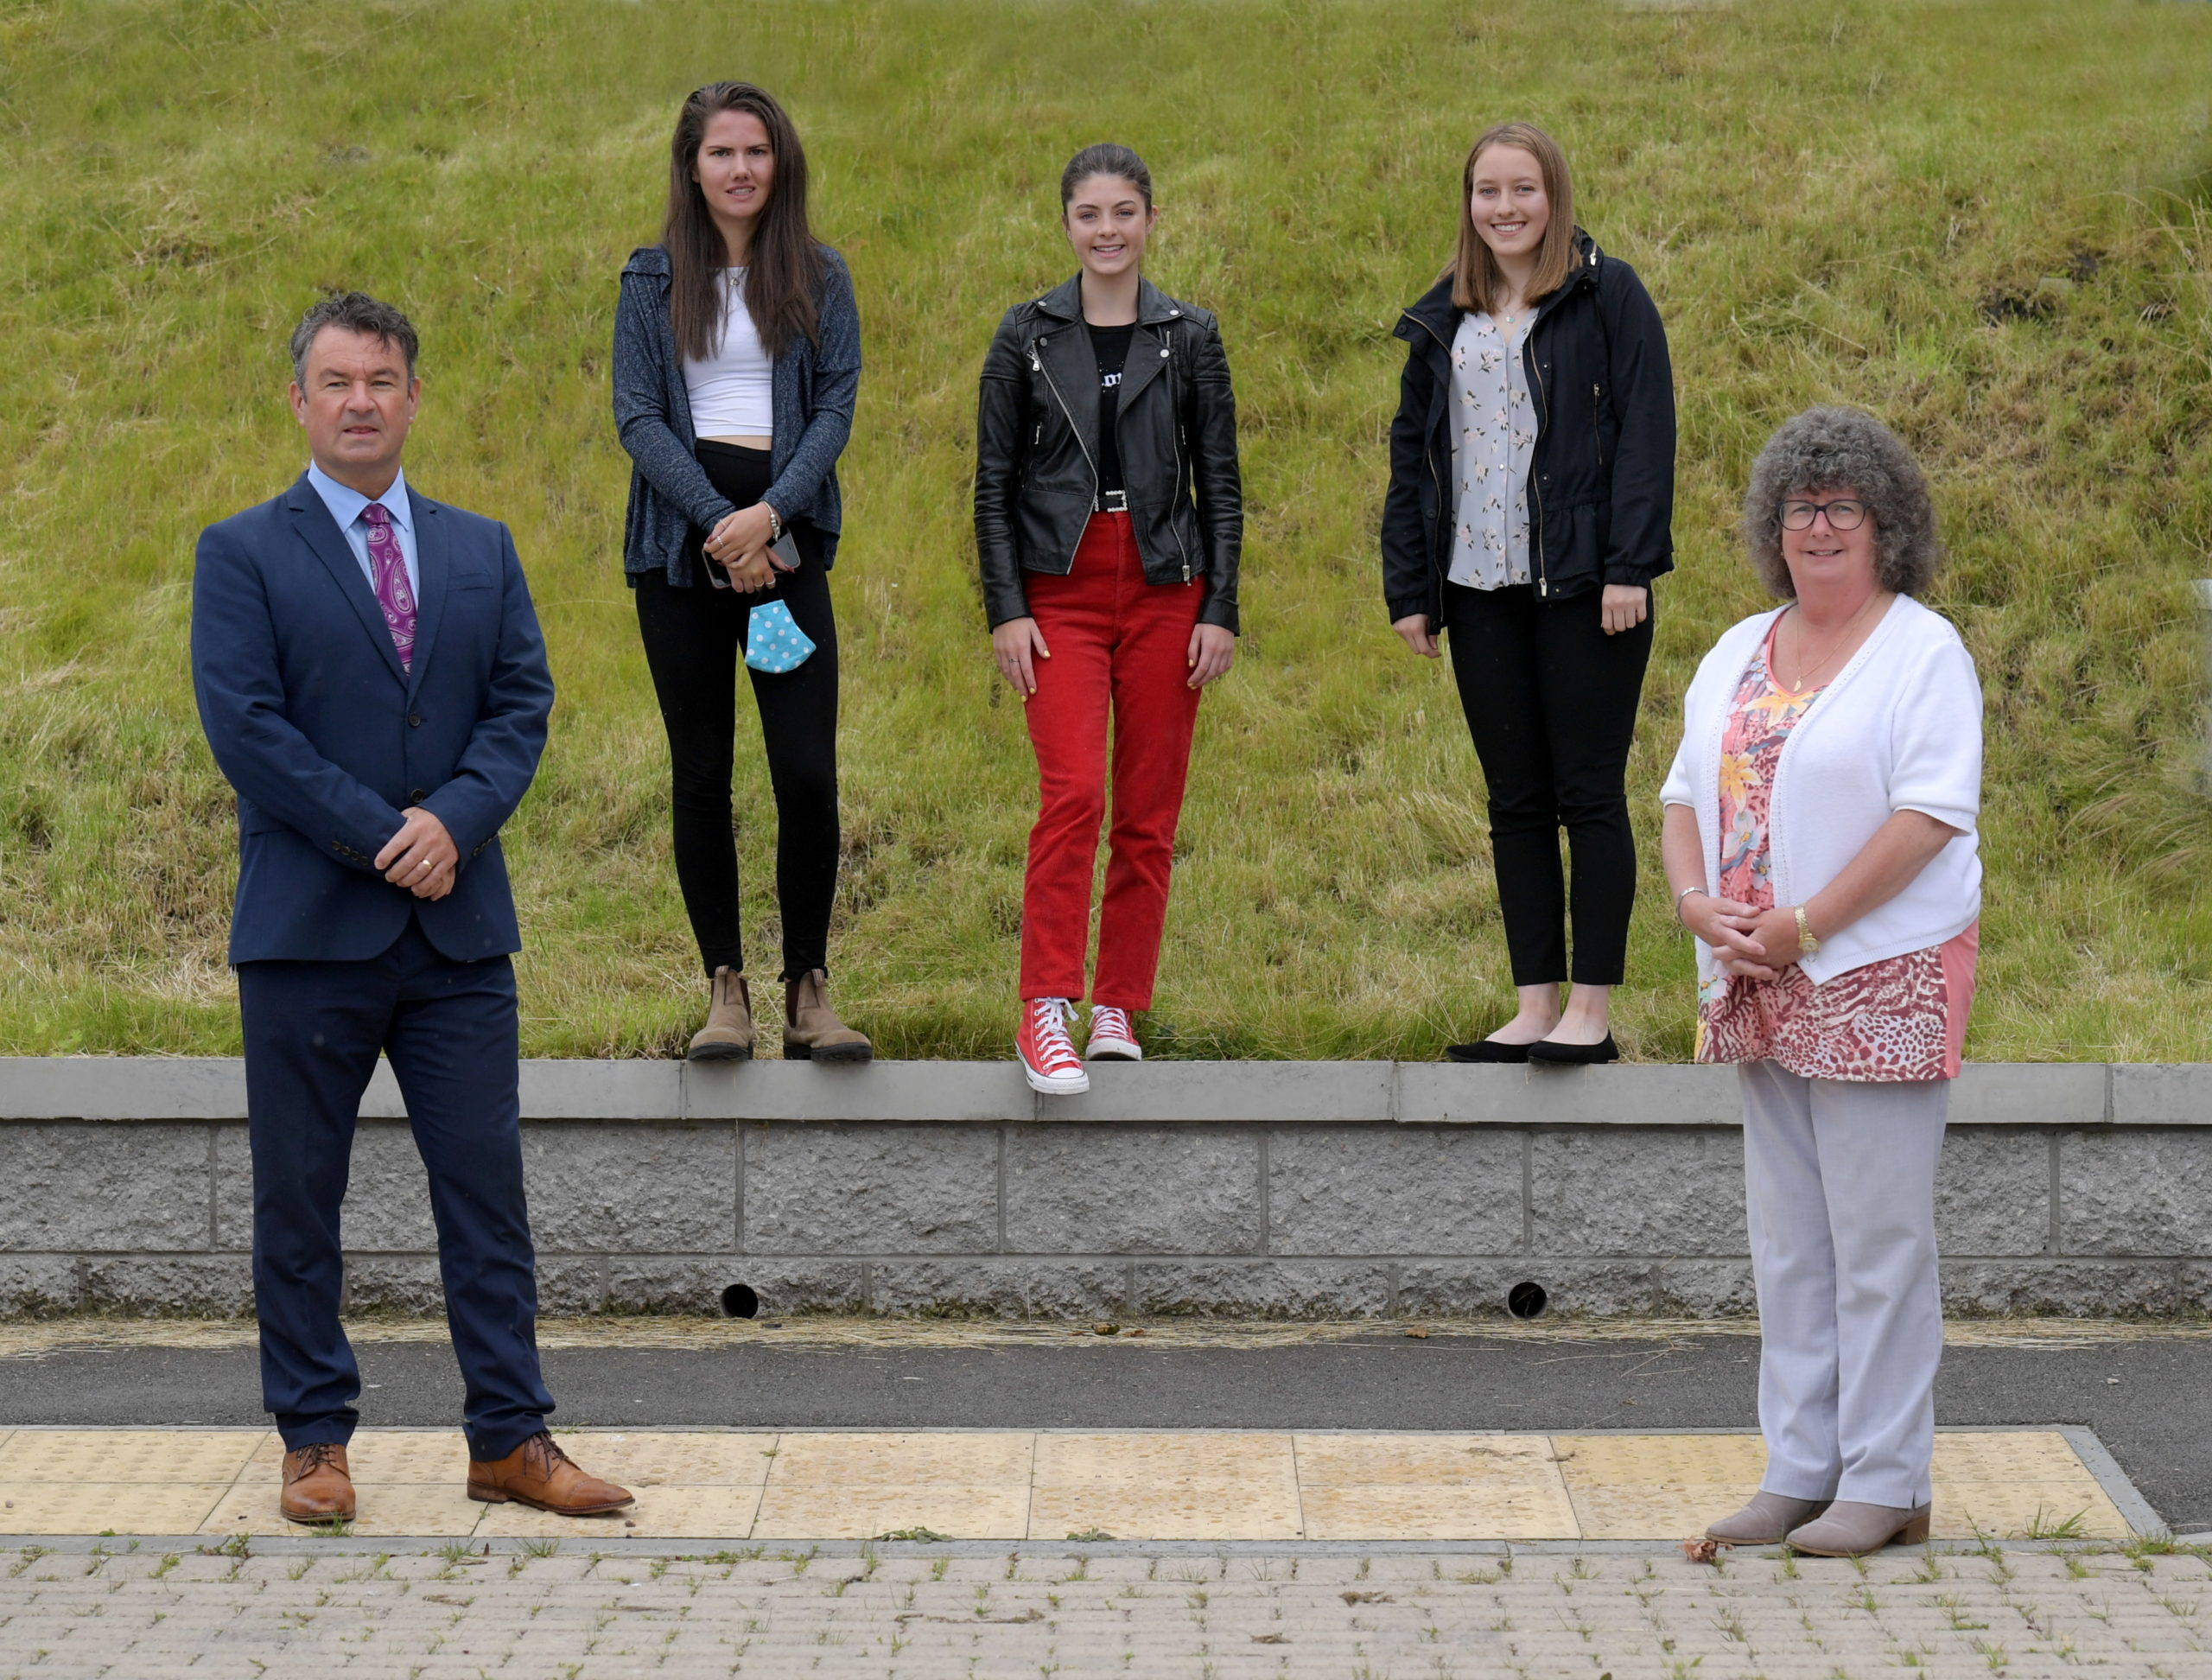 Pictured from left, Head of Education Vincent Docherty, students Megan Kelly, Abbie Johnson, Amy Simpson and councillor Gillian Owen. Picture by KATH FLANNERY